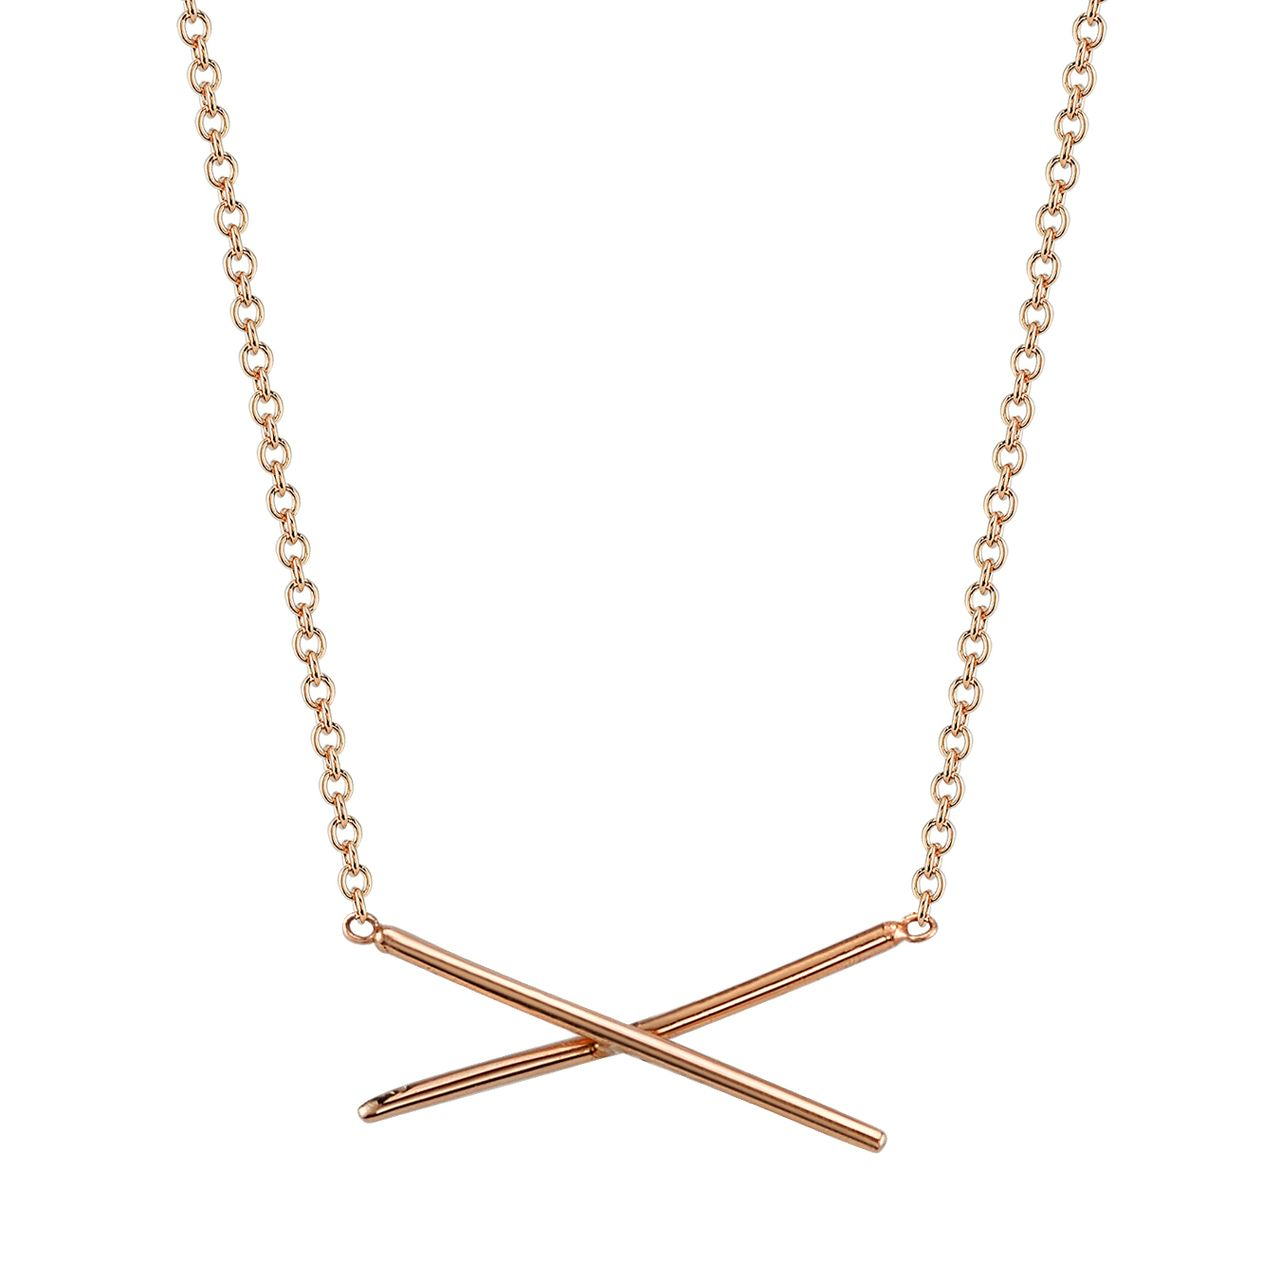 X Necklace Los angeles california Gold jewellery and Store